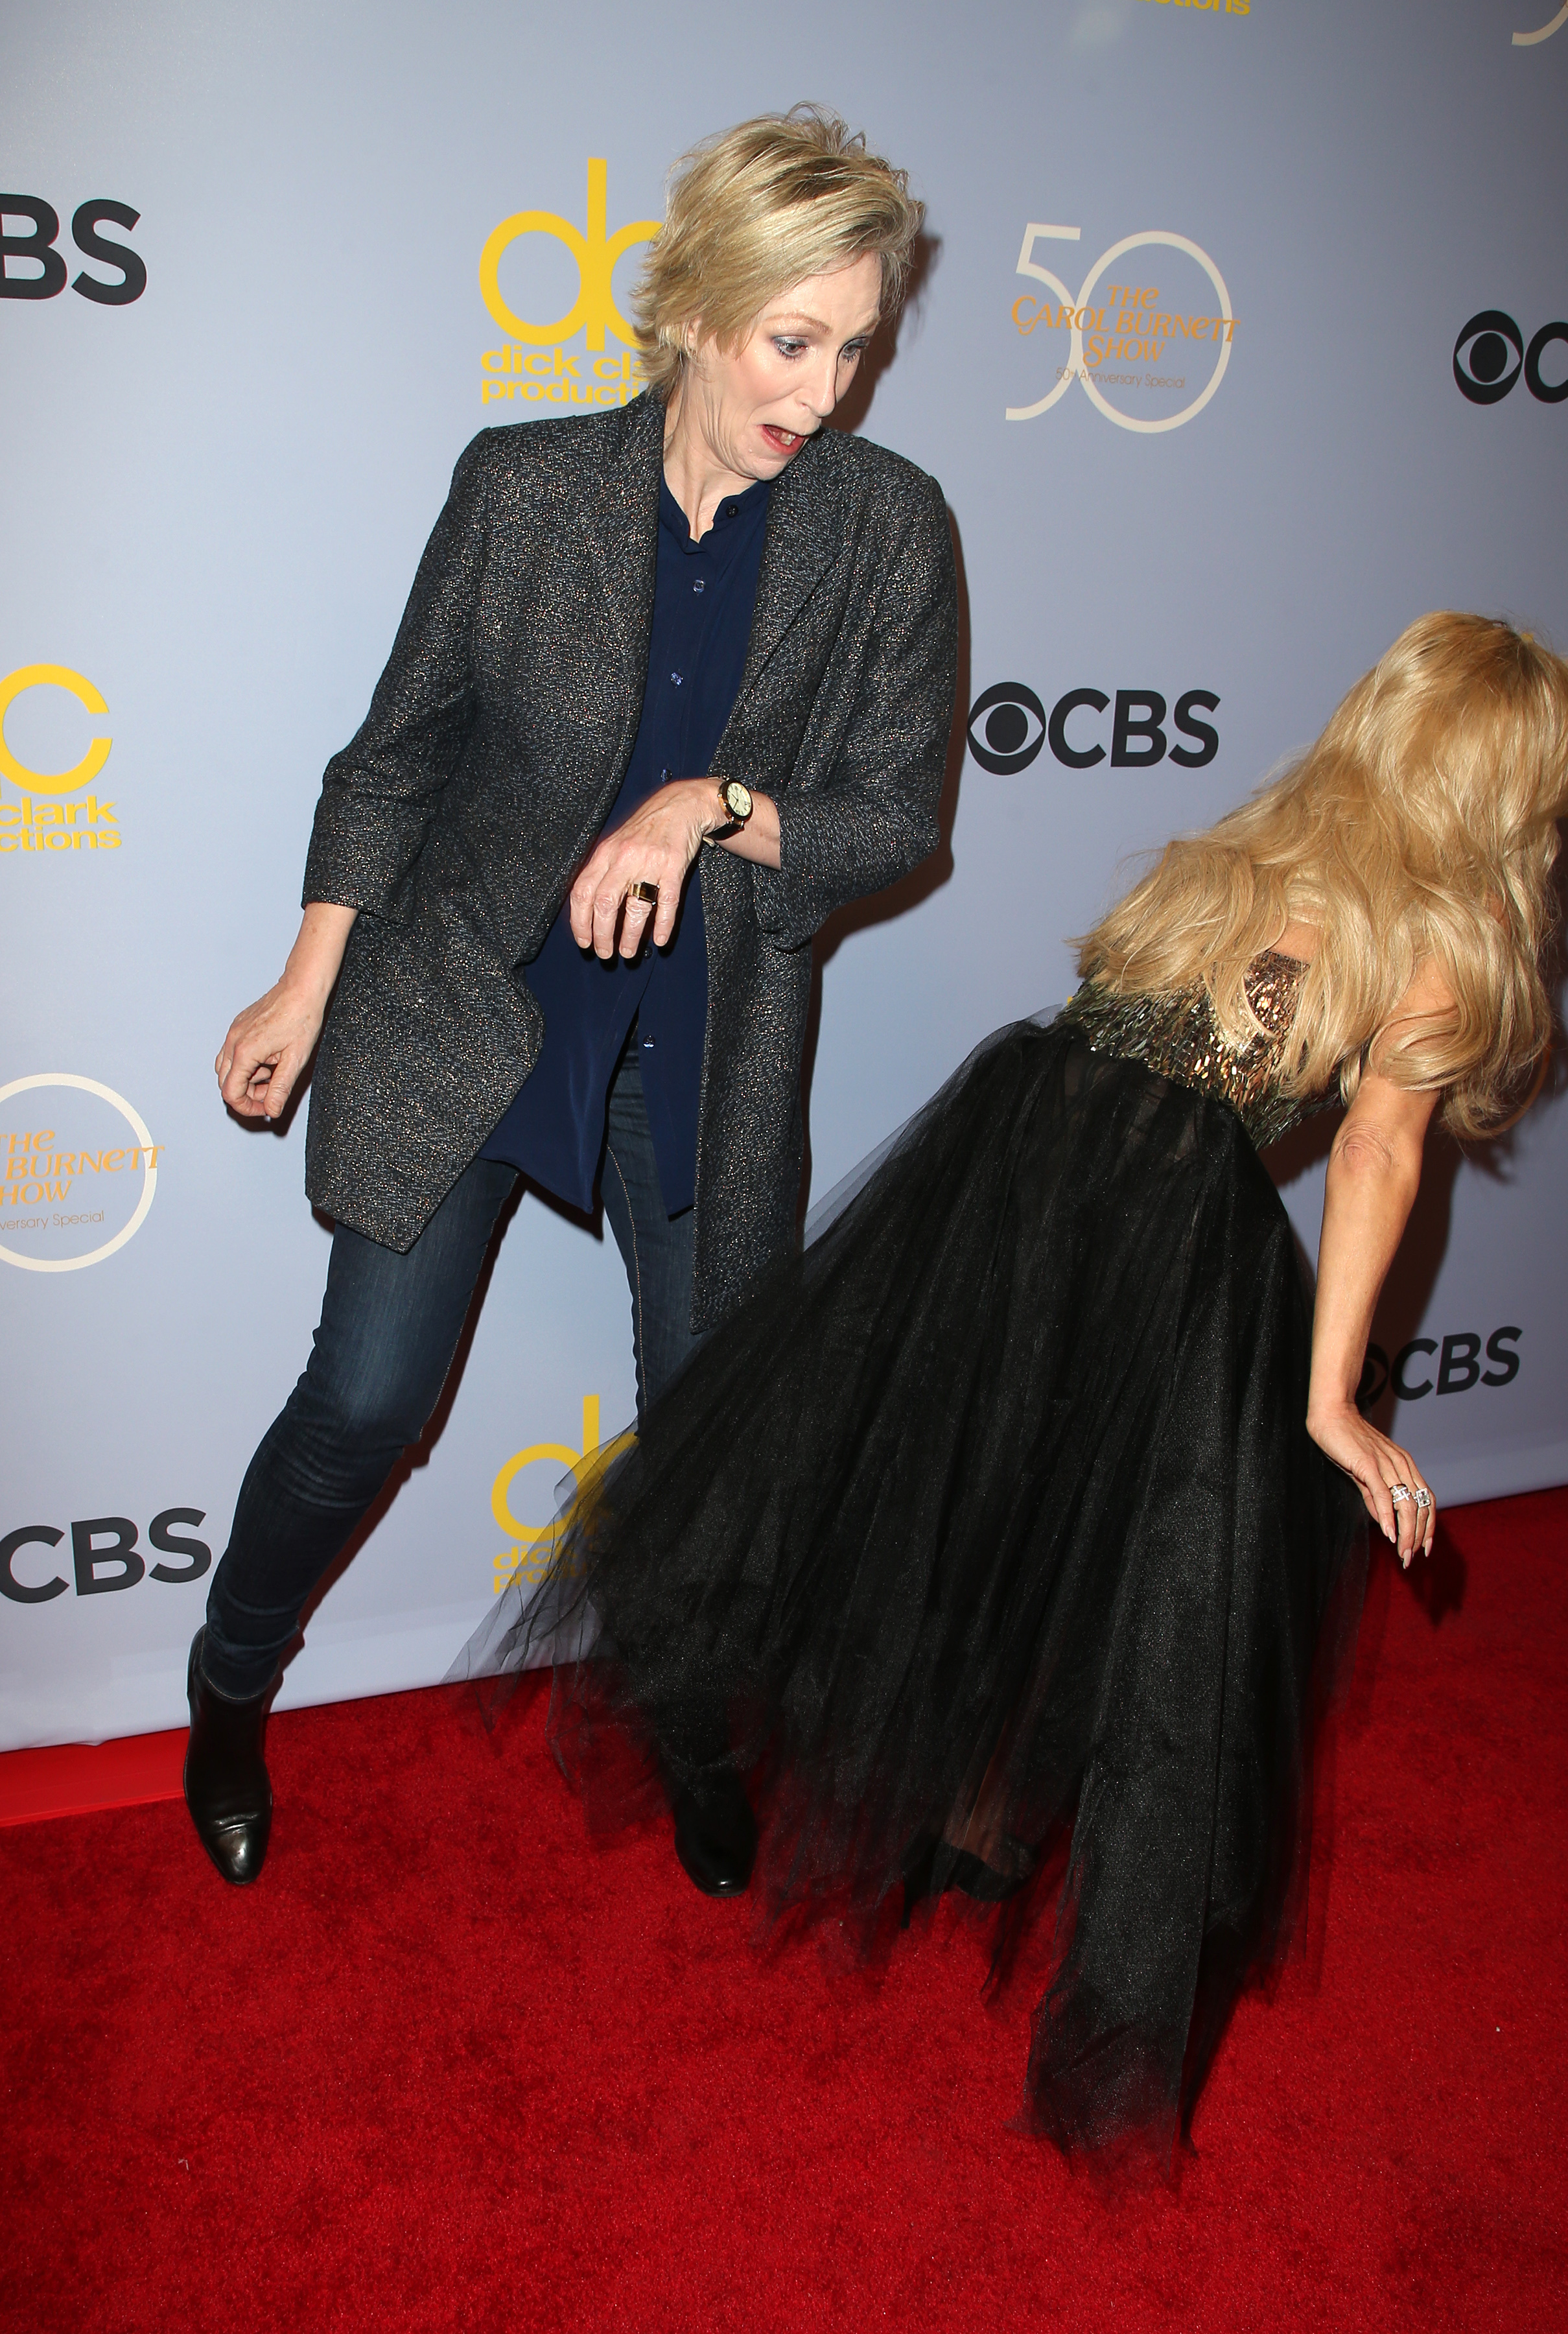 Jane Lynch attends CBS' 'The Carol Burnett Show 50th Anniversary Special' in Los Angeles on Oct. 4, 2017.